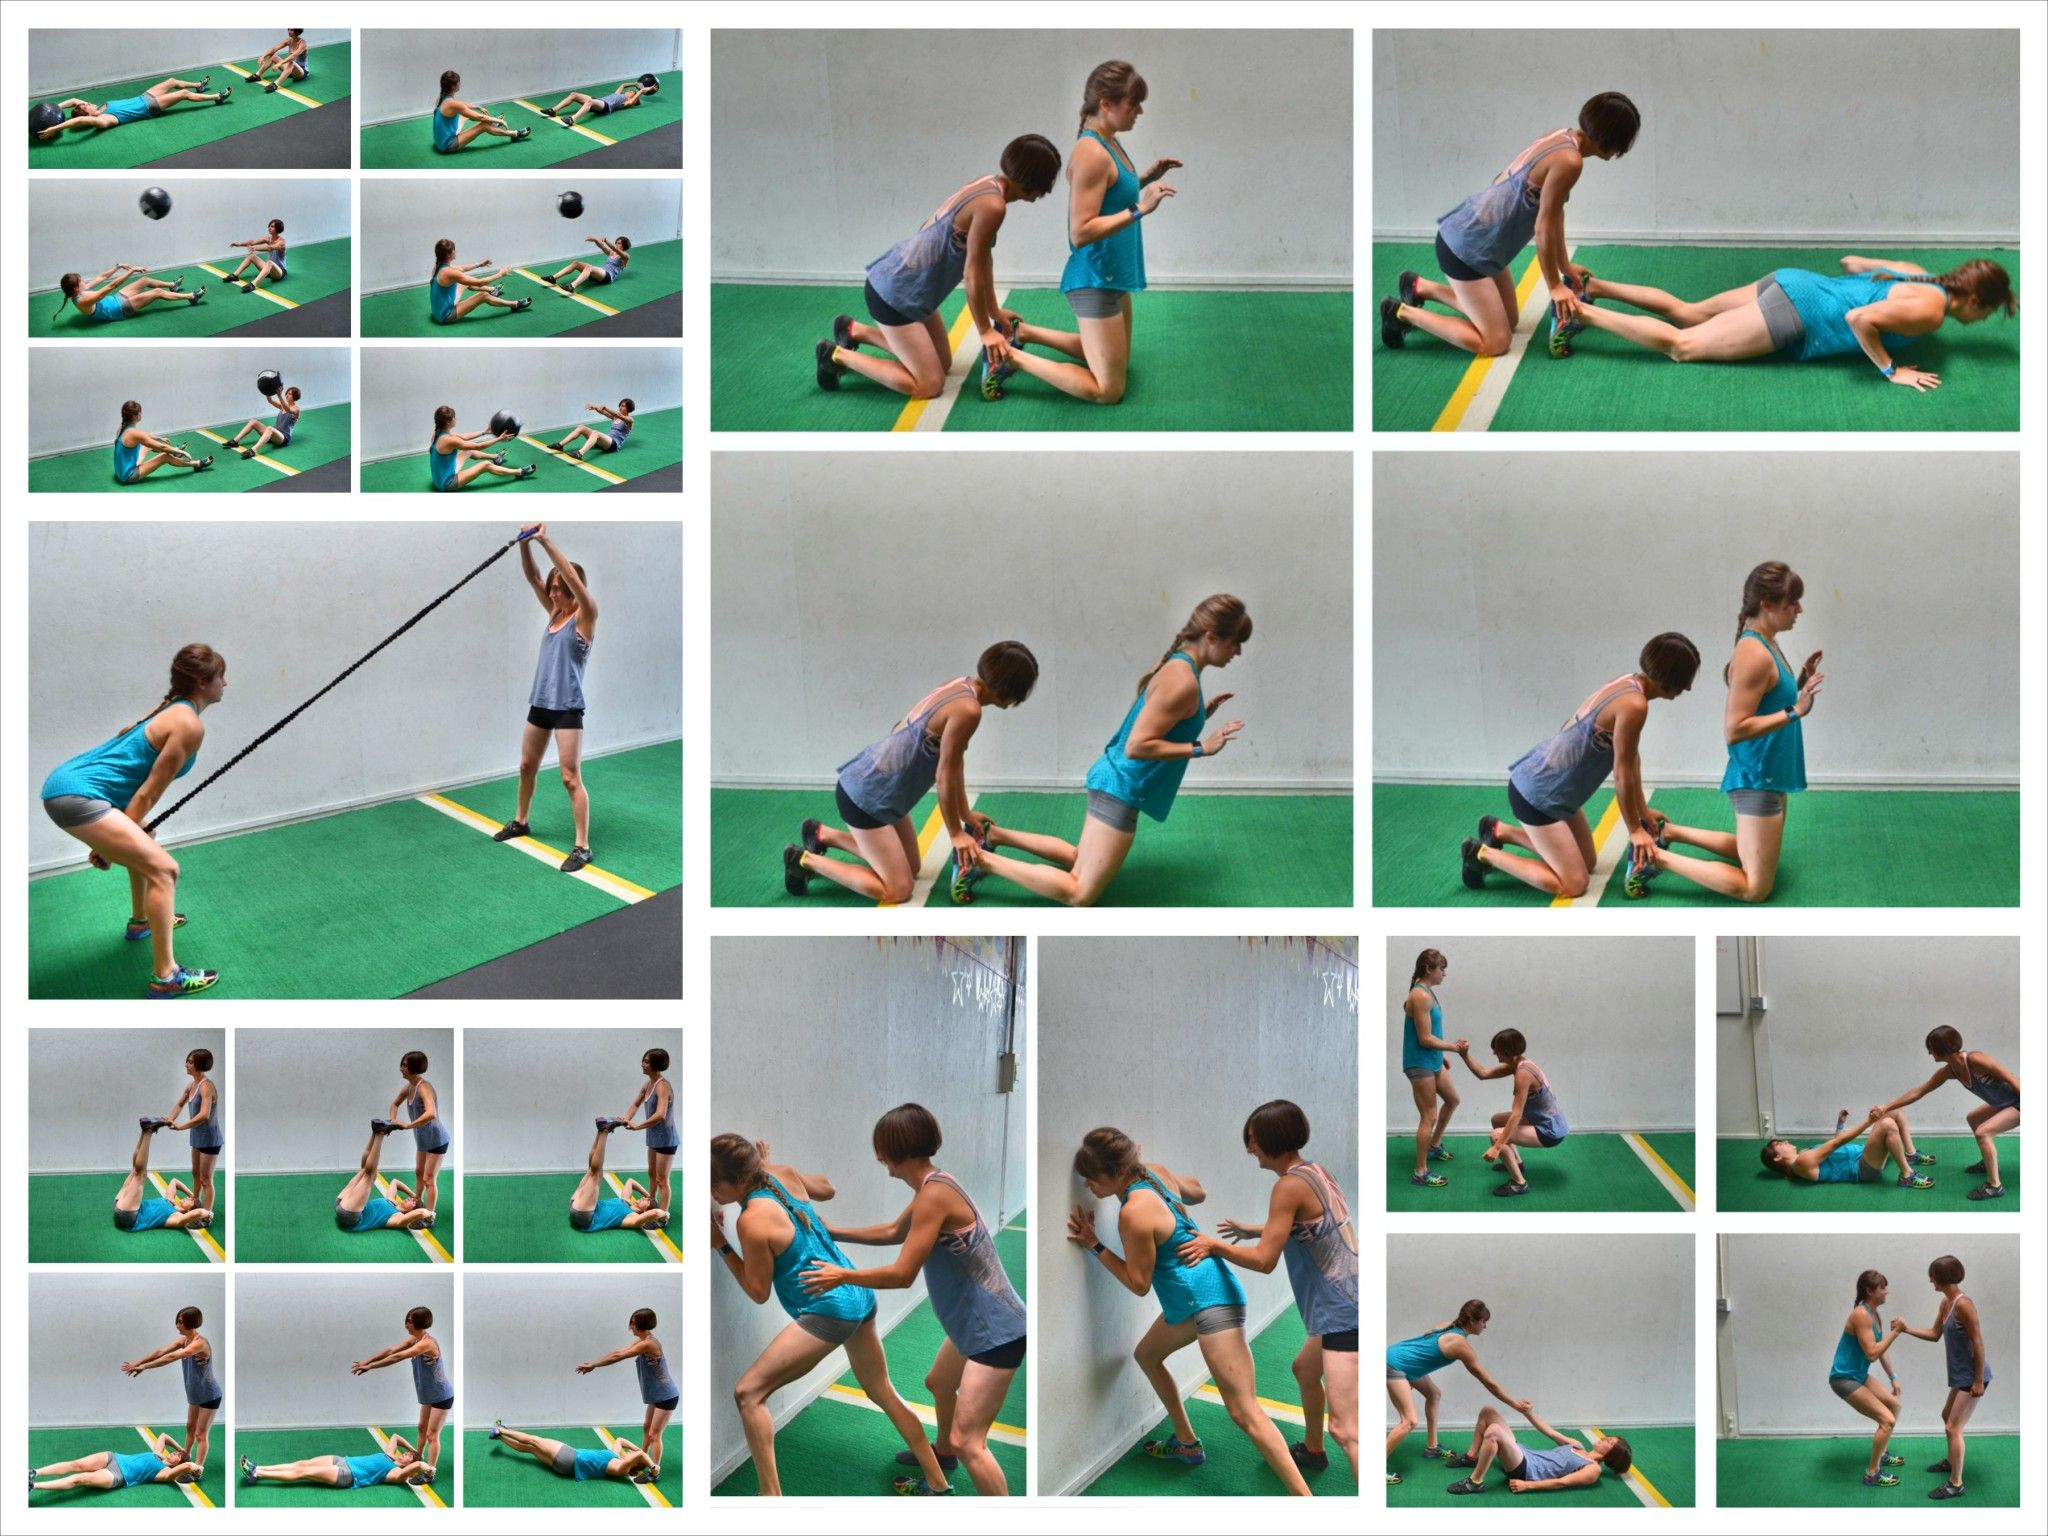 Kids Playing Leapfrog In Gym